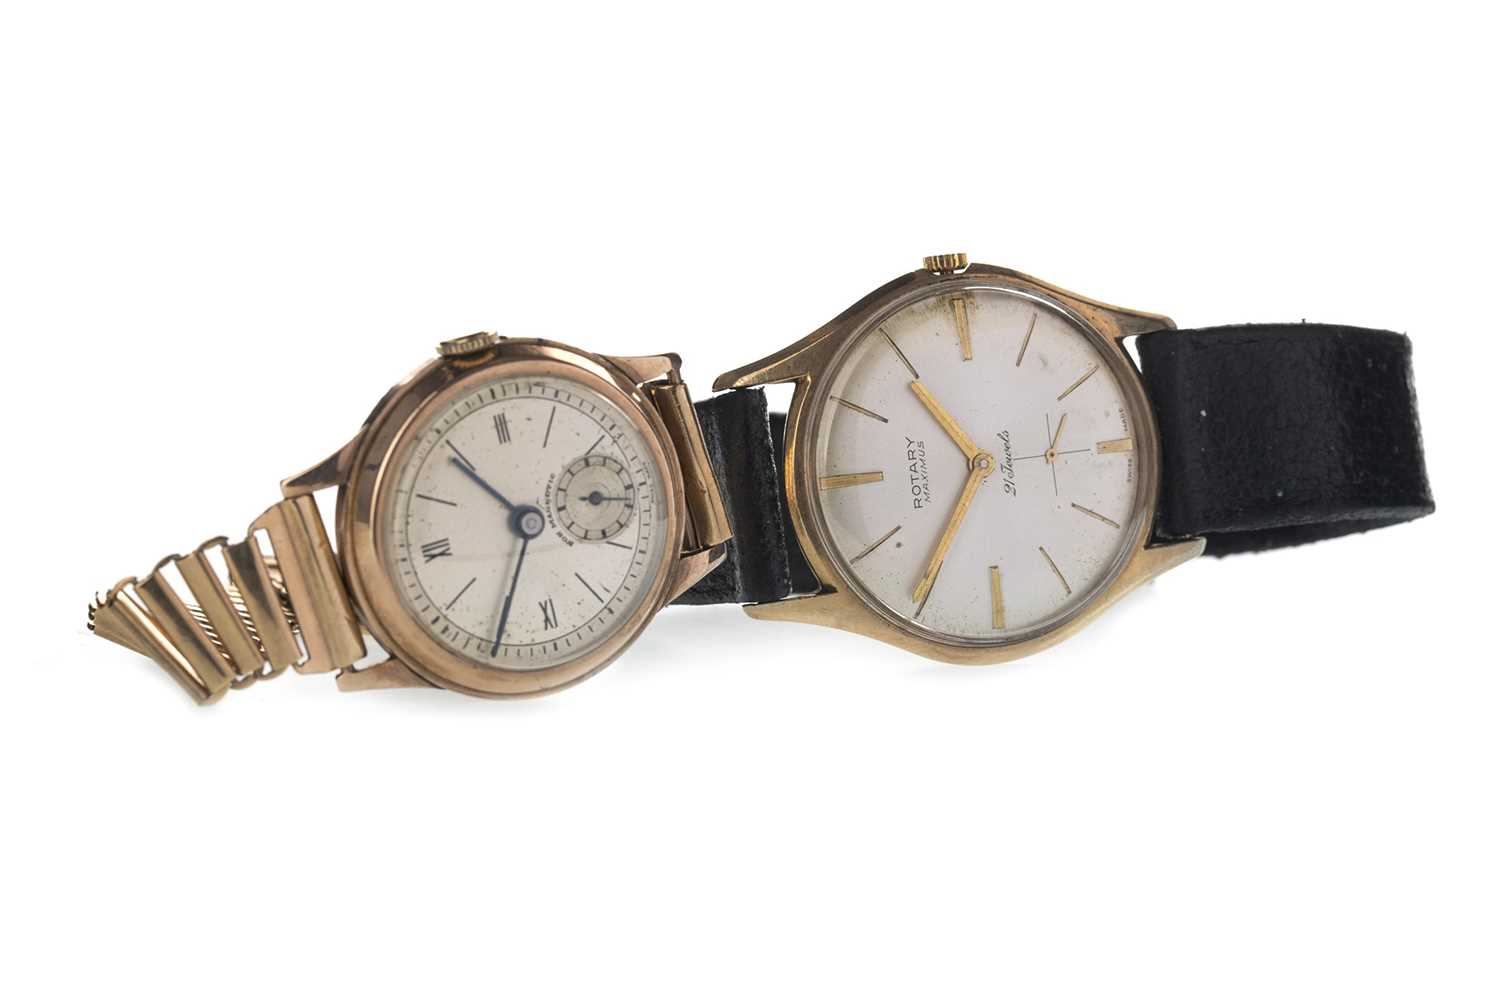 Lot 717-A GENTLEMAN'S ROTARY MAXIMUS NINE CARAT GOLD MANUAL WIND WRIST WATCH AND ANOTHER GOLD EXAMPLE